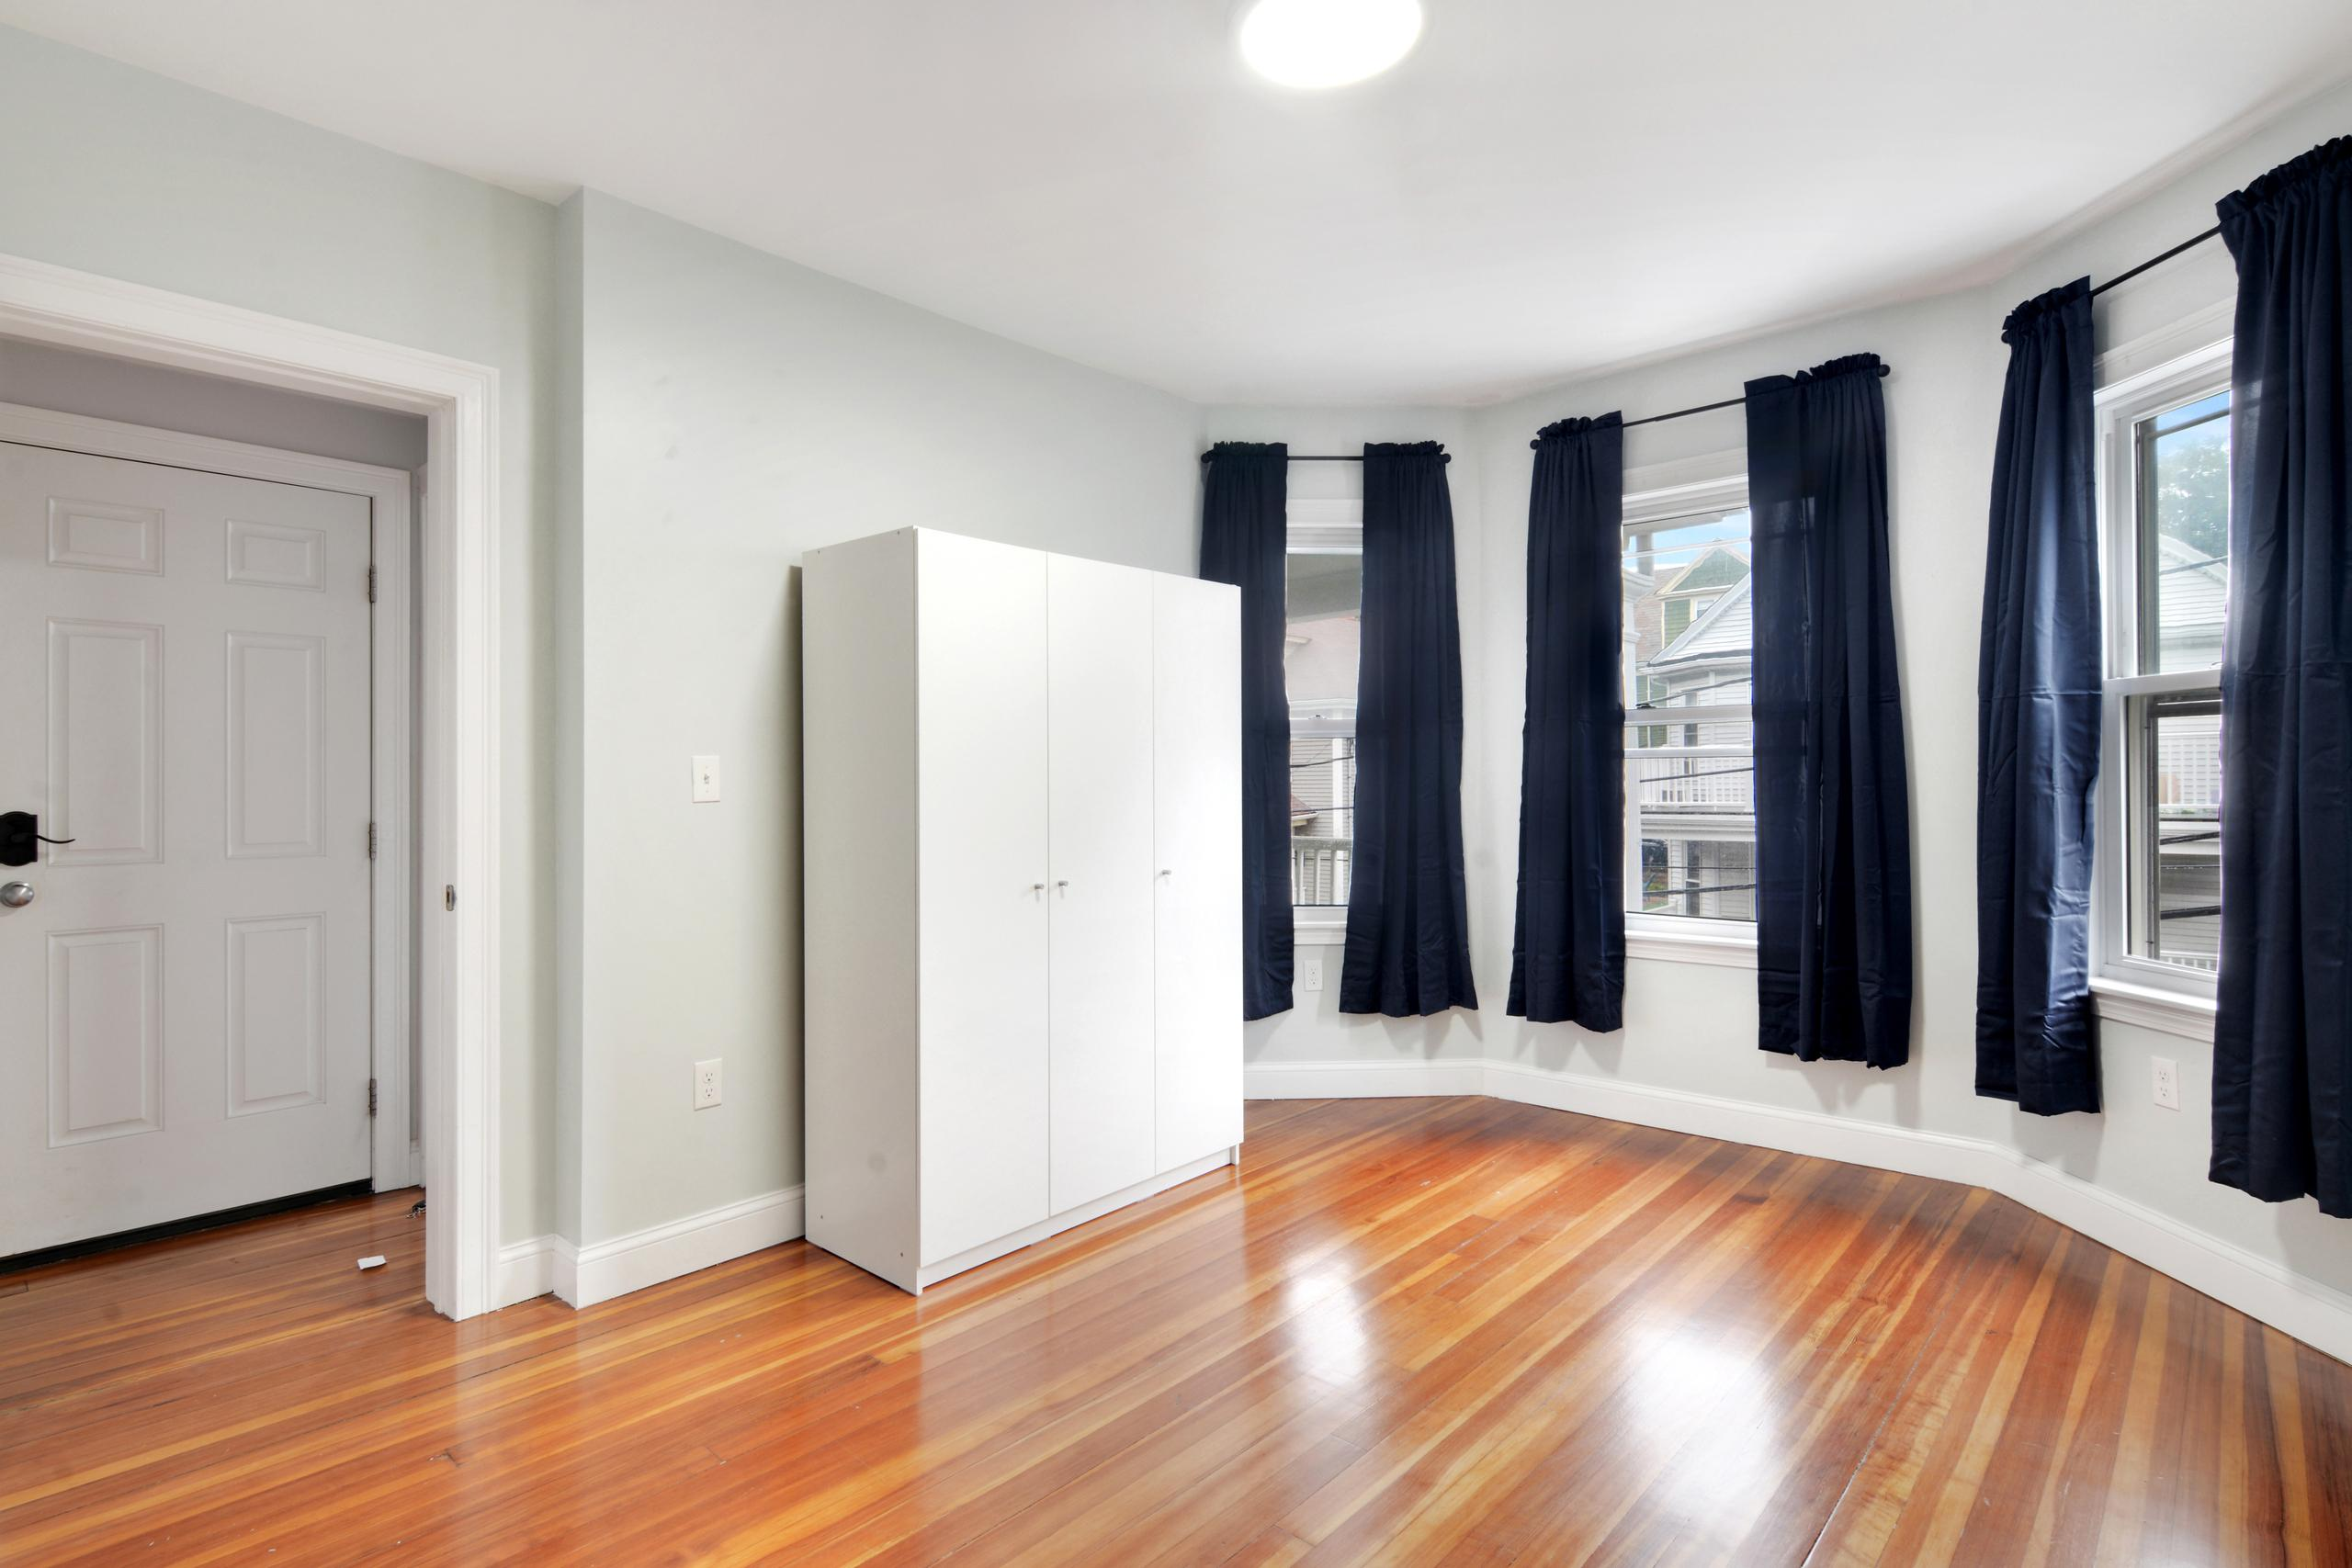 Photo of Queen Room D (can be furnished or unfurnished) room June Homes